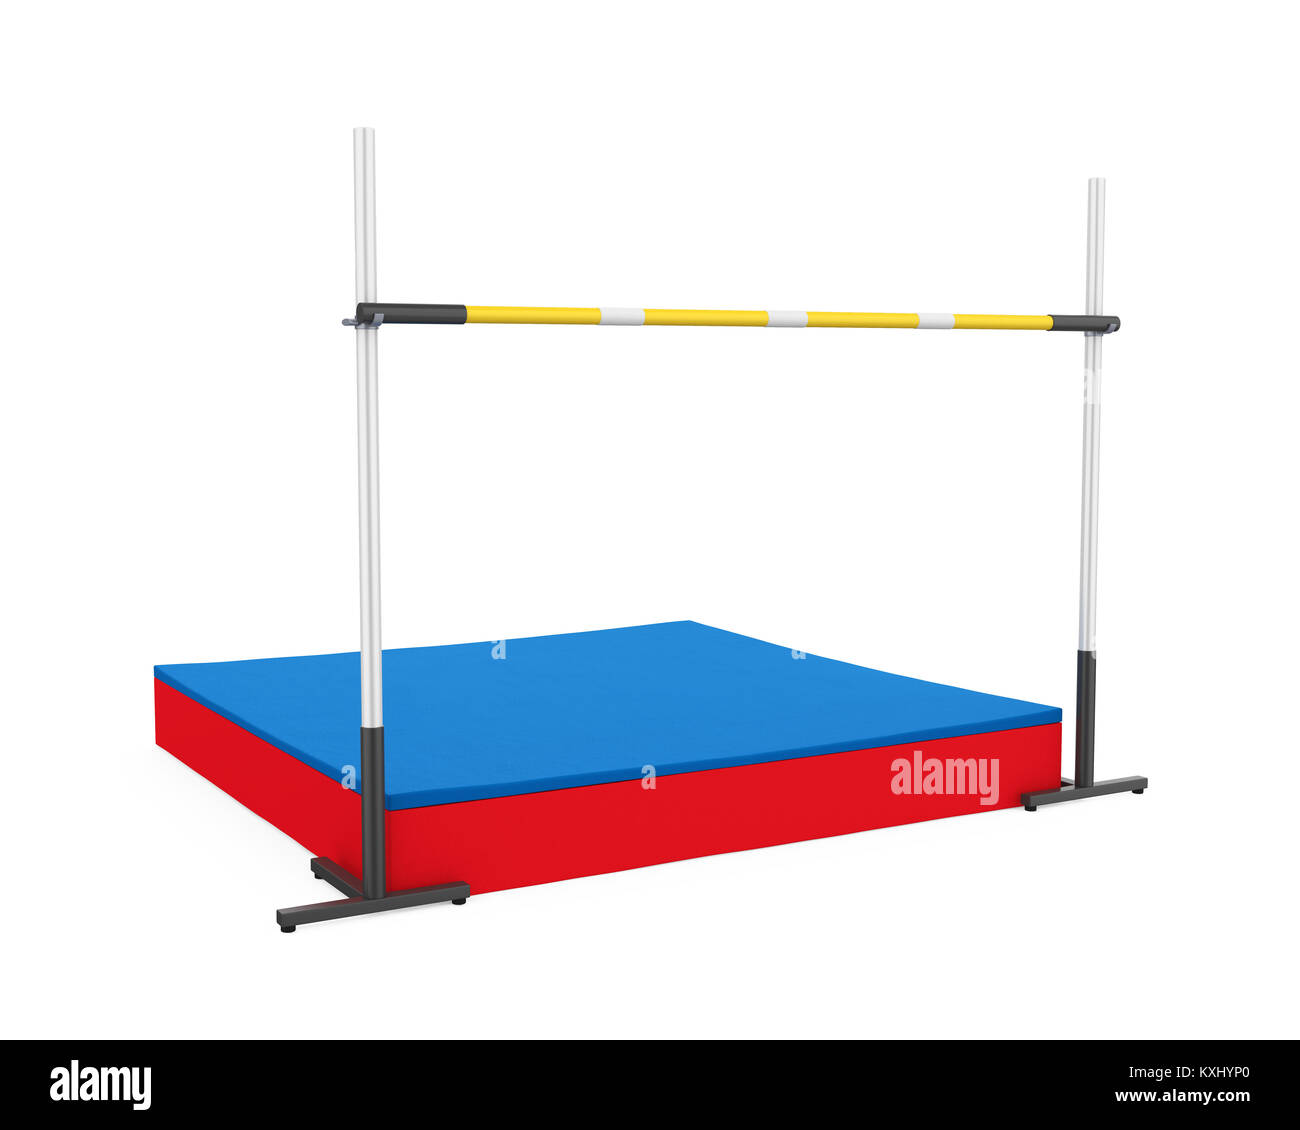 model collegiate mats mat pit high jump ucs